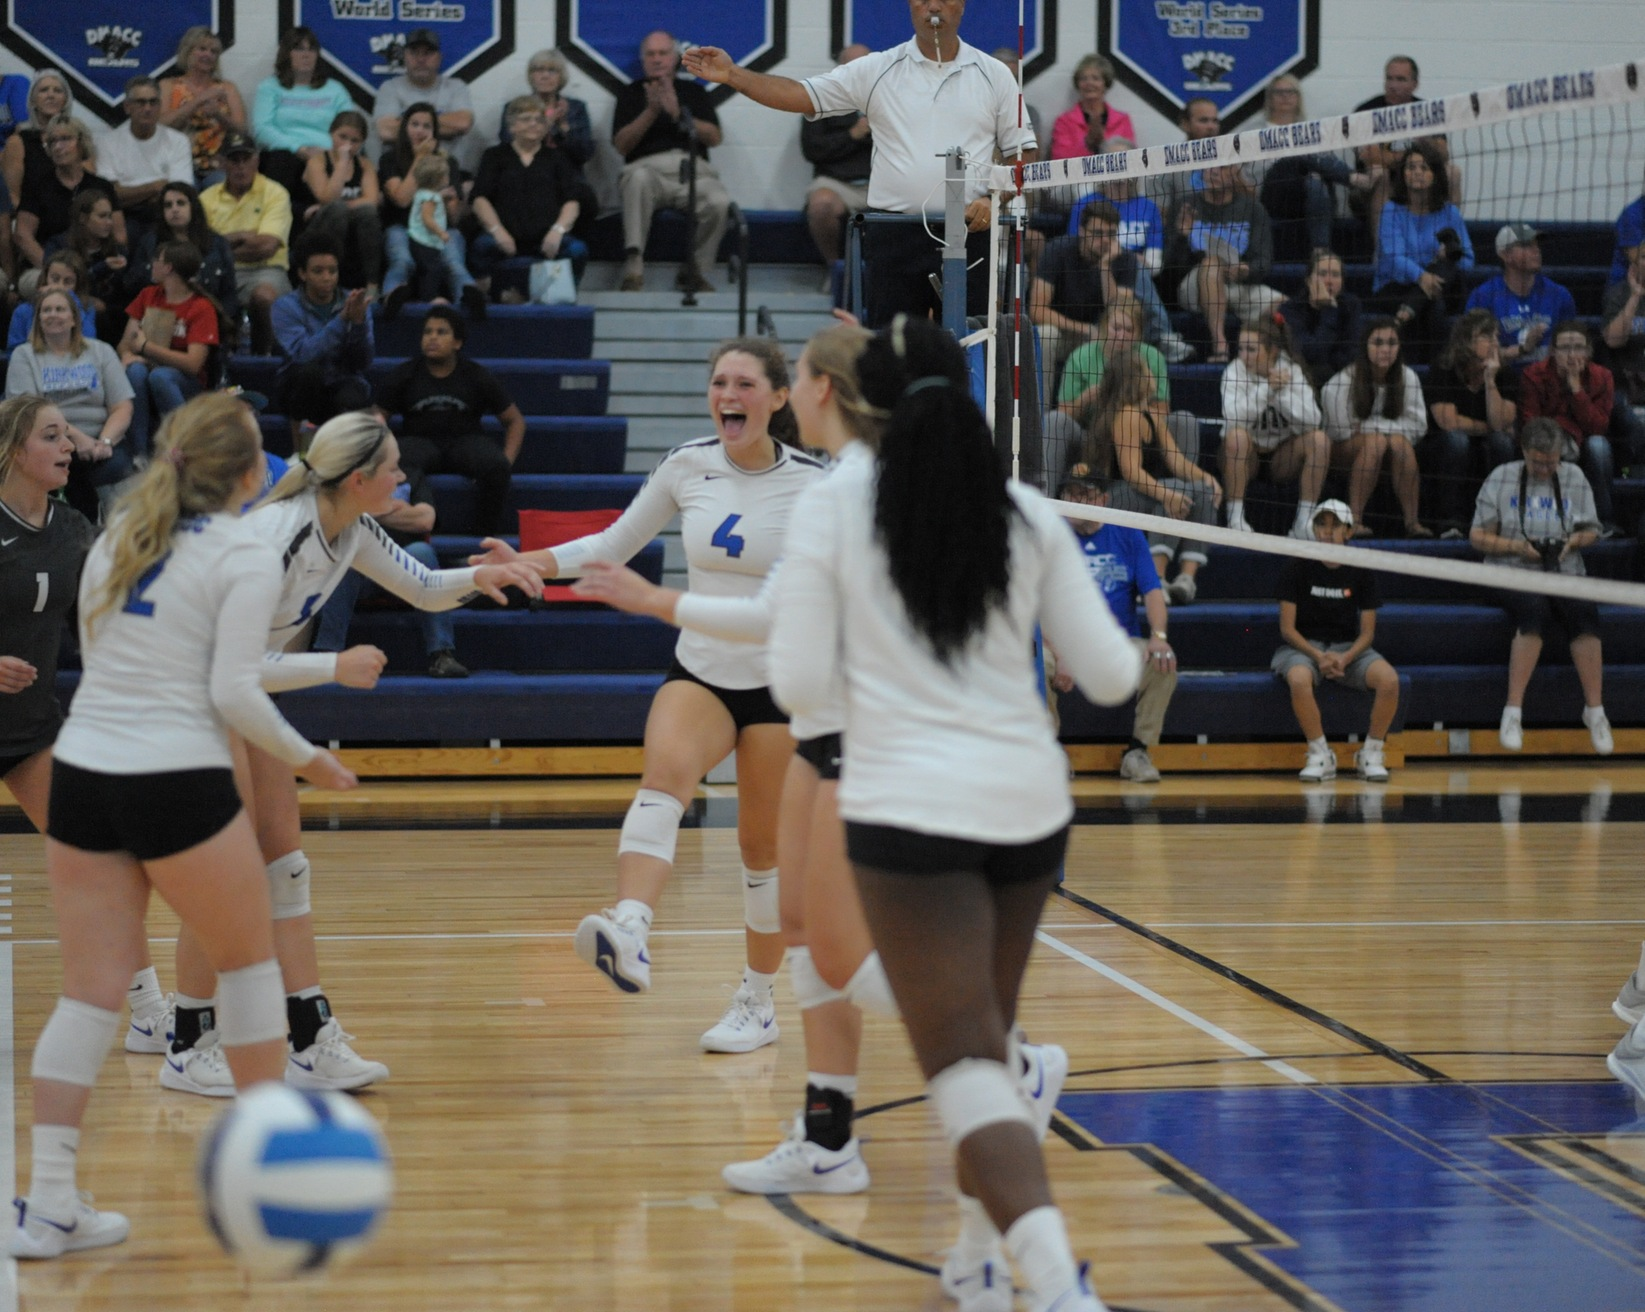 Parker, Paulsen lead DMACC volleyball team past NIACC, 3-1